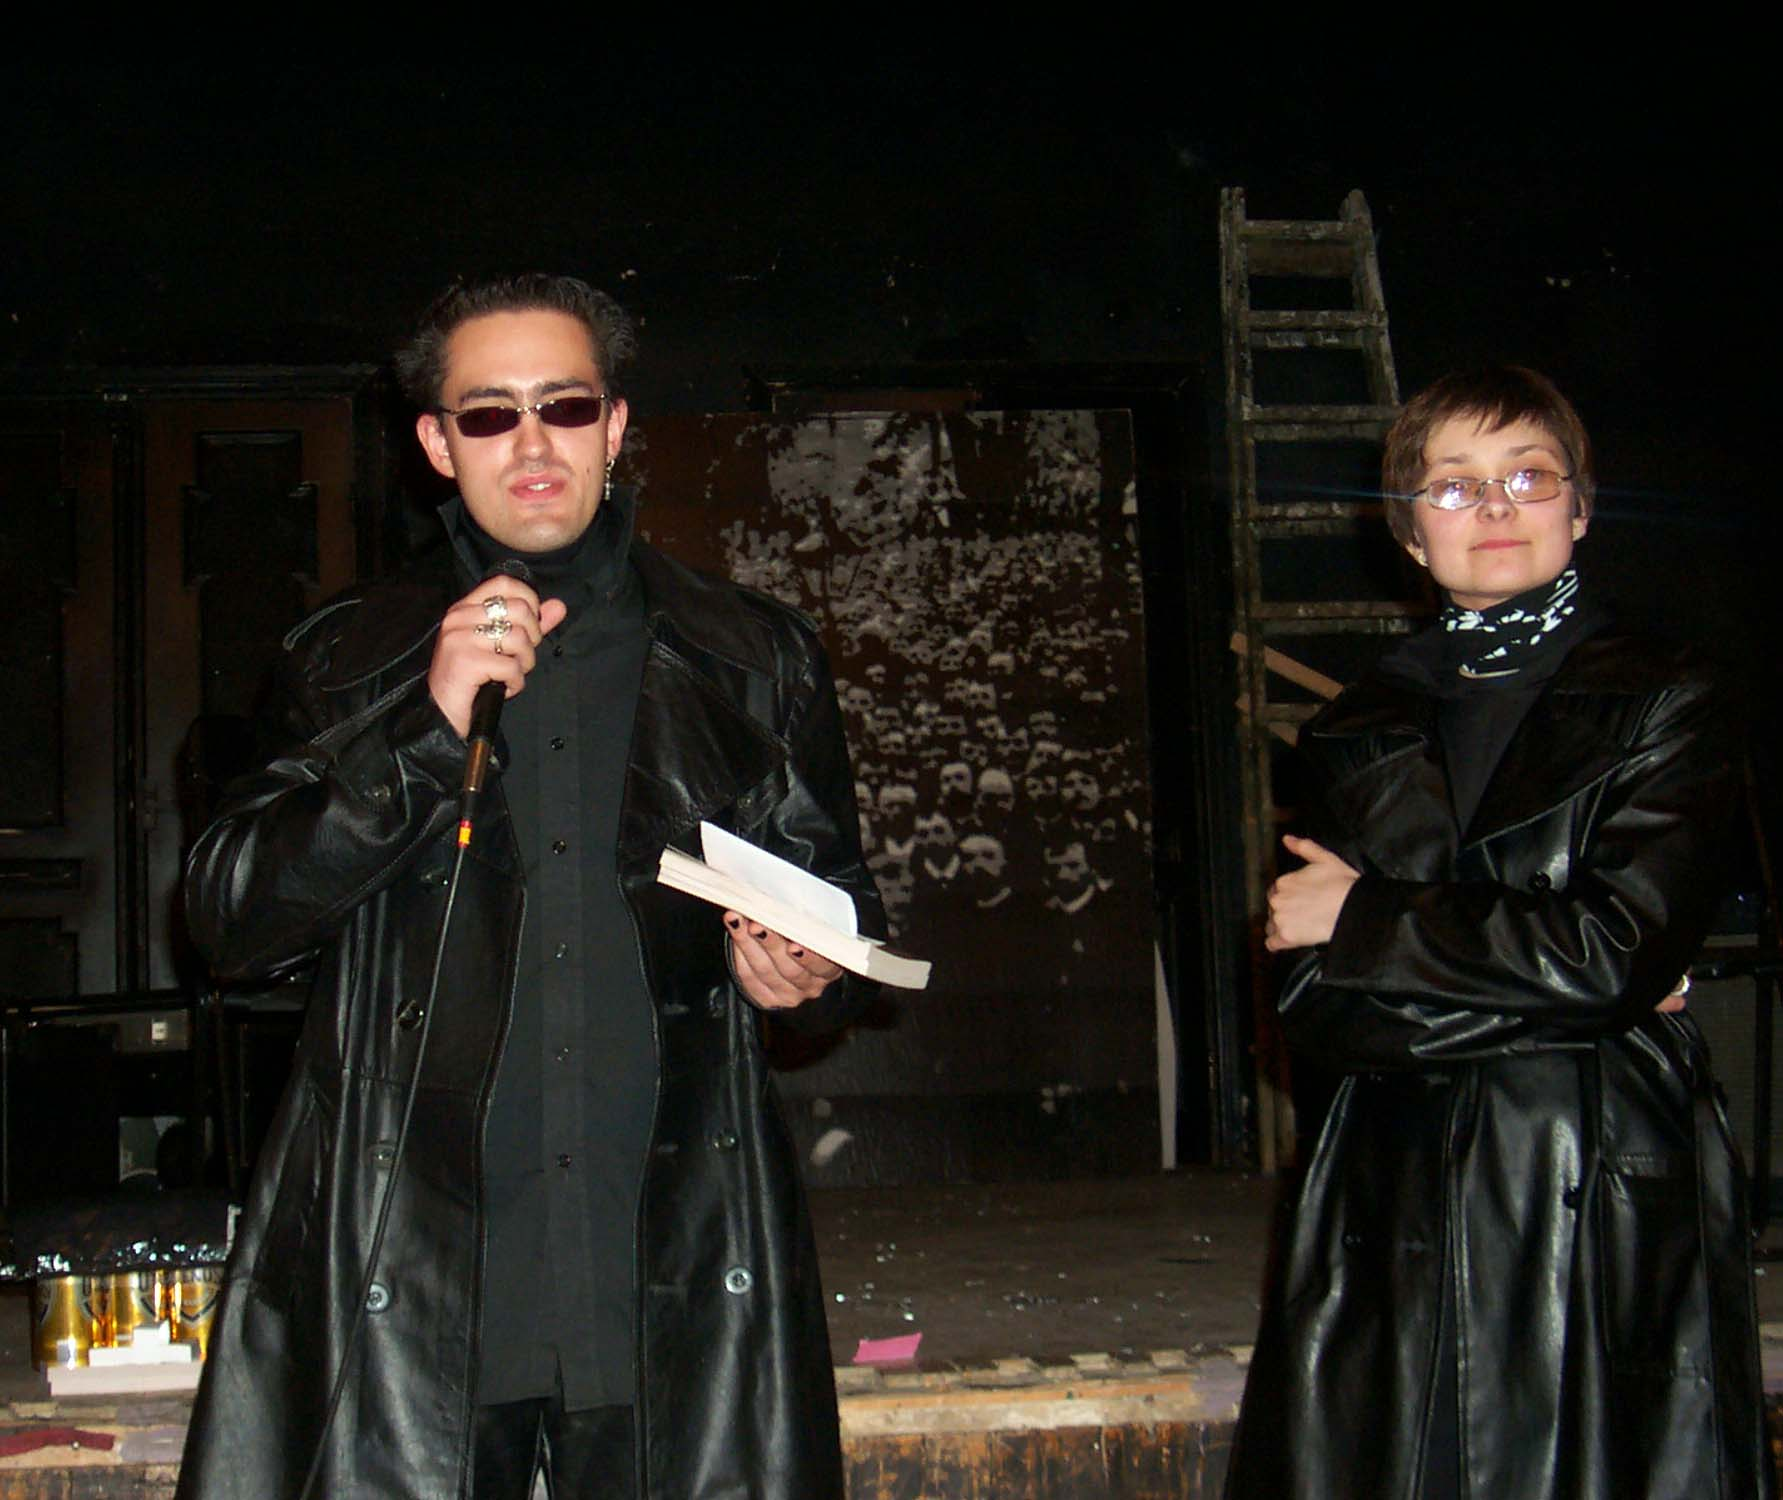 Award and closing ceremony at the Lituanicon 2004.